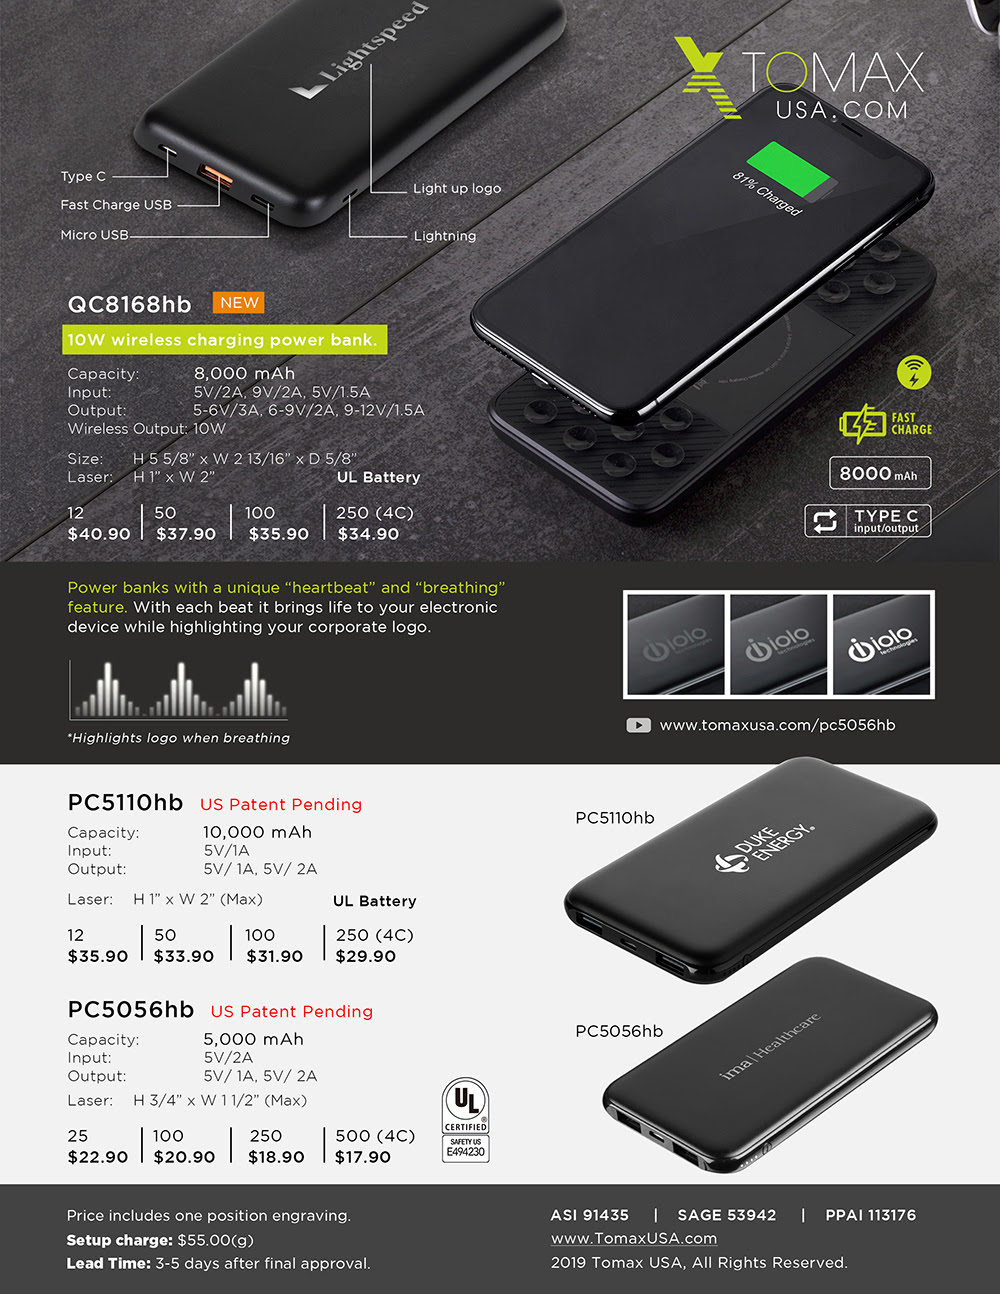 New 10W wireless charging powerbank, with heartbeat and breathing logo